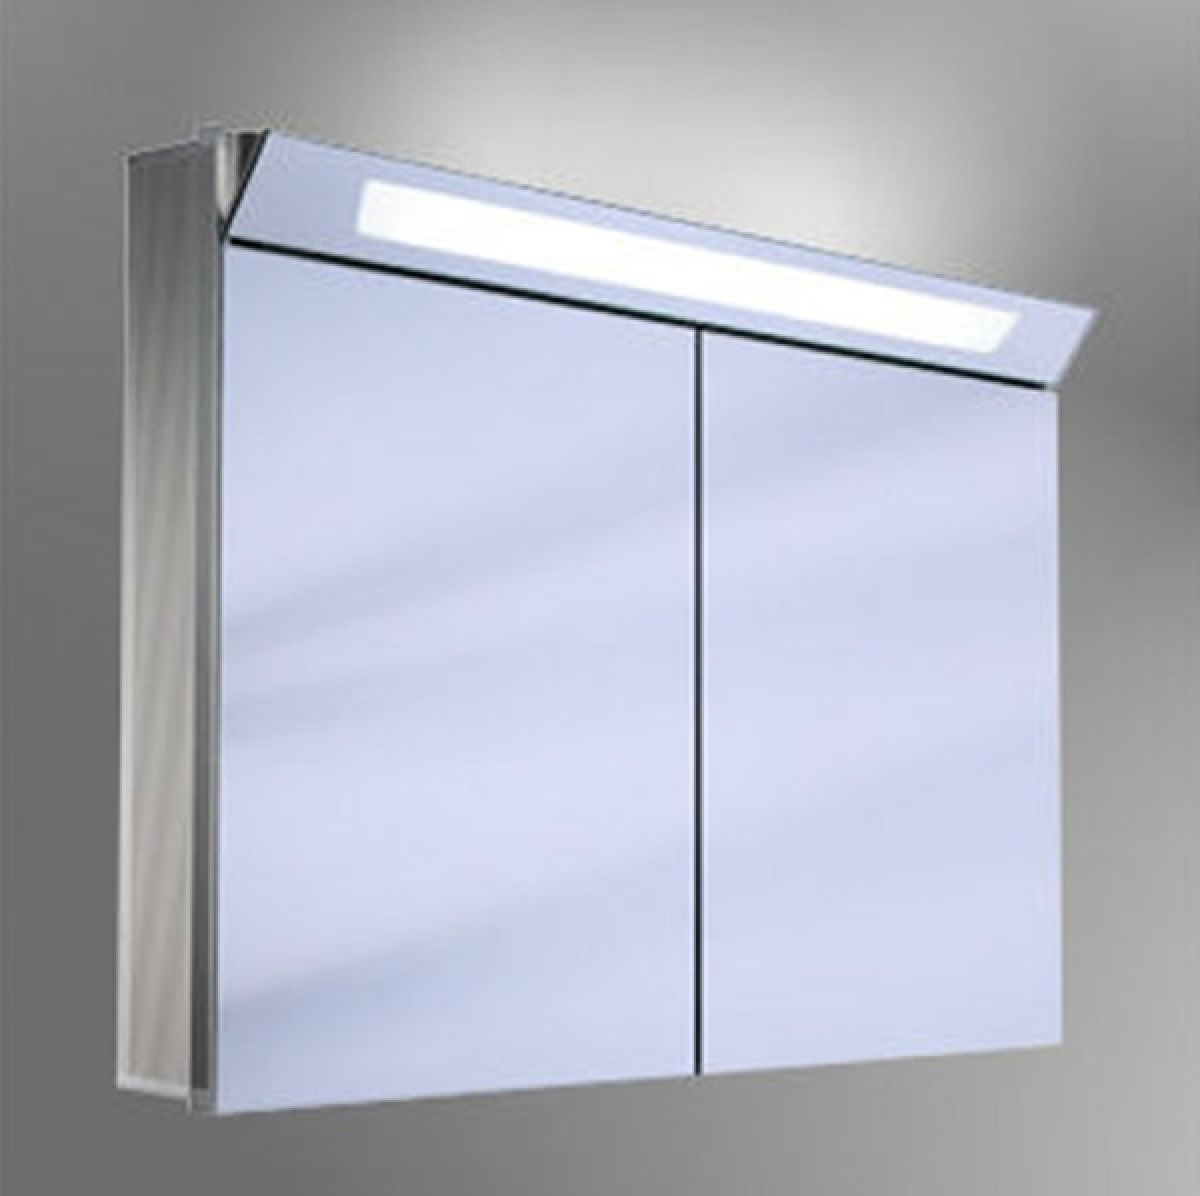 bathroom cabinets illuminated schneider capeline illuminated bathroom mirror cabinet 10380